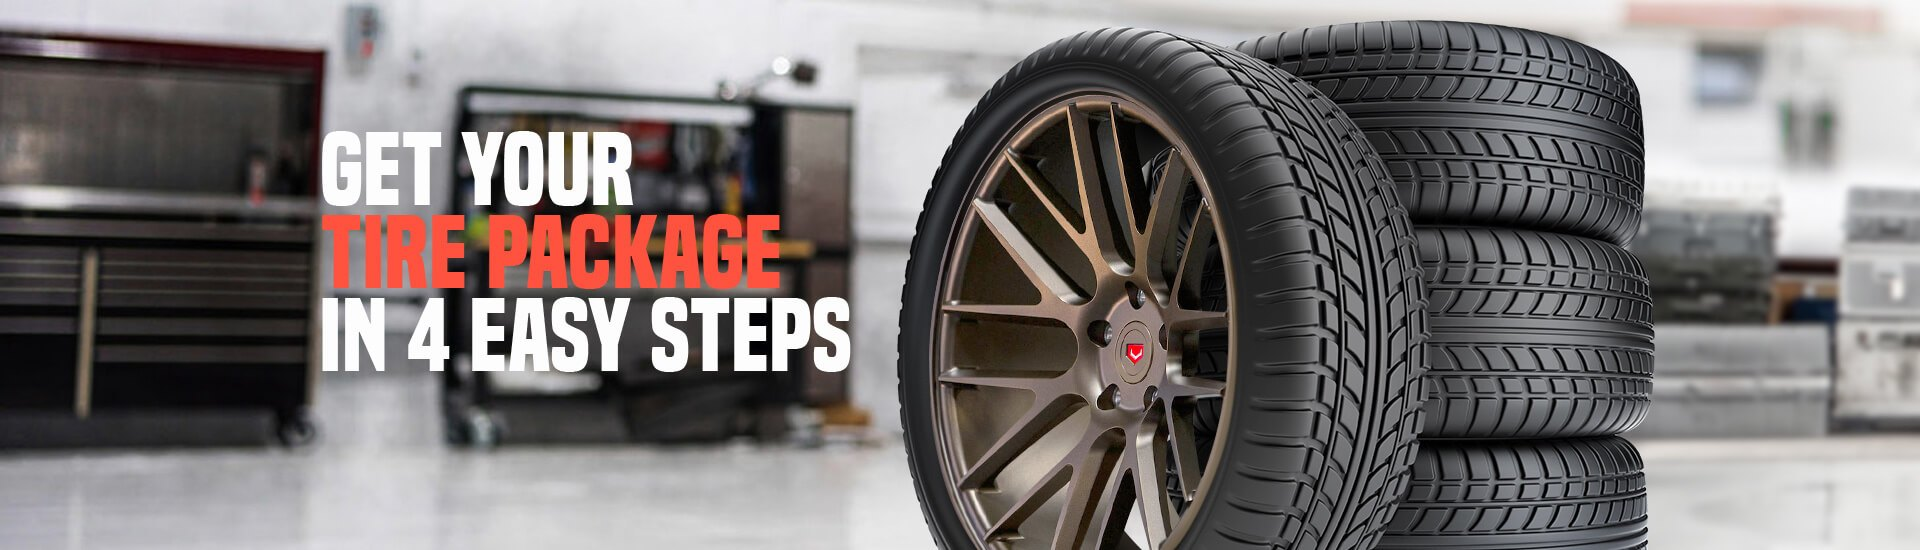 wheel tire packages truck jeep car off road carid com